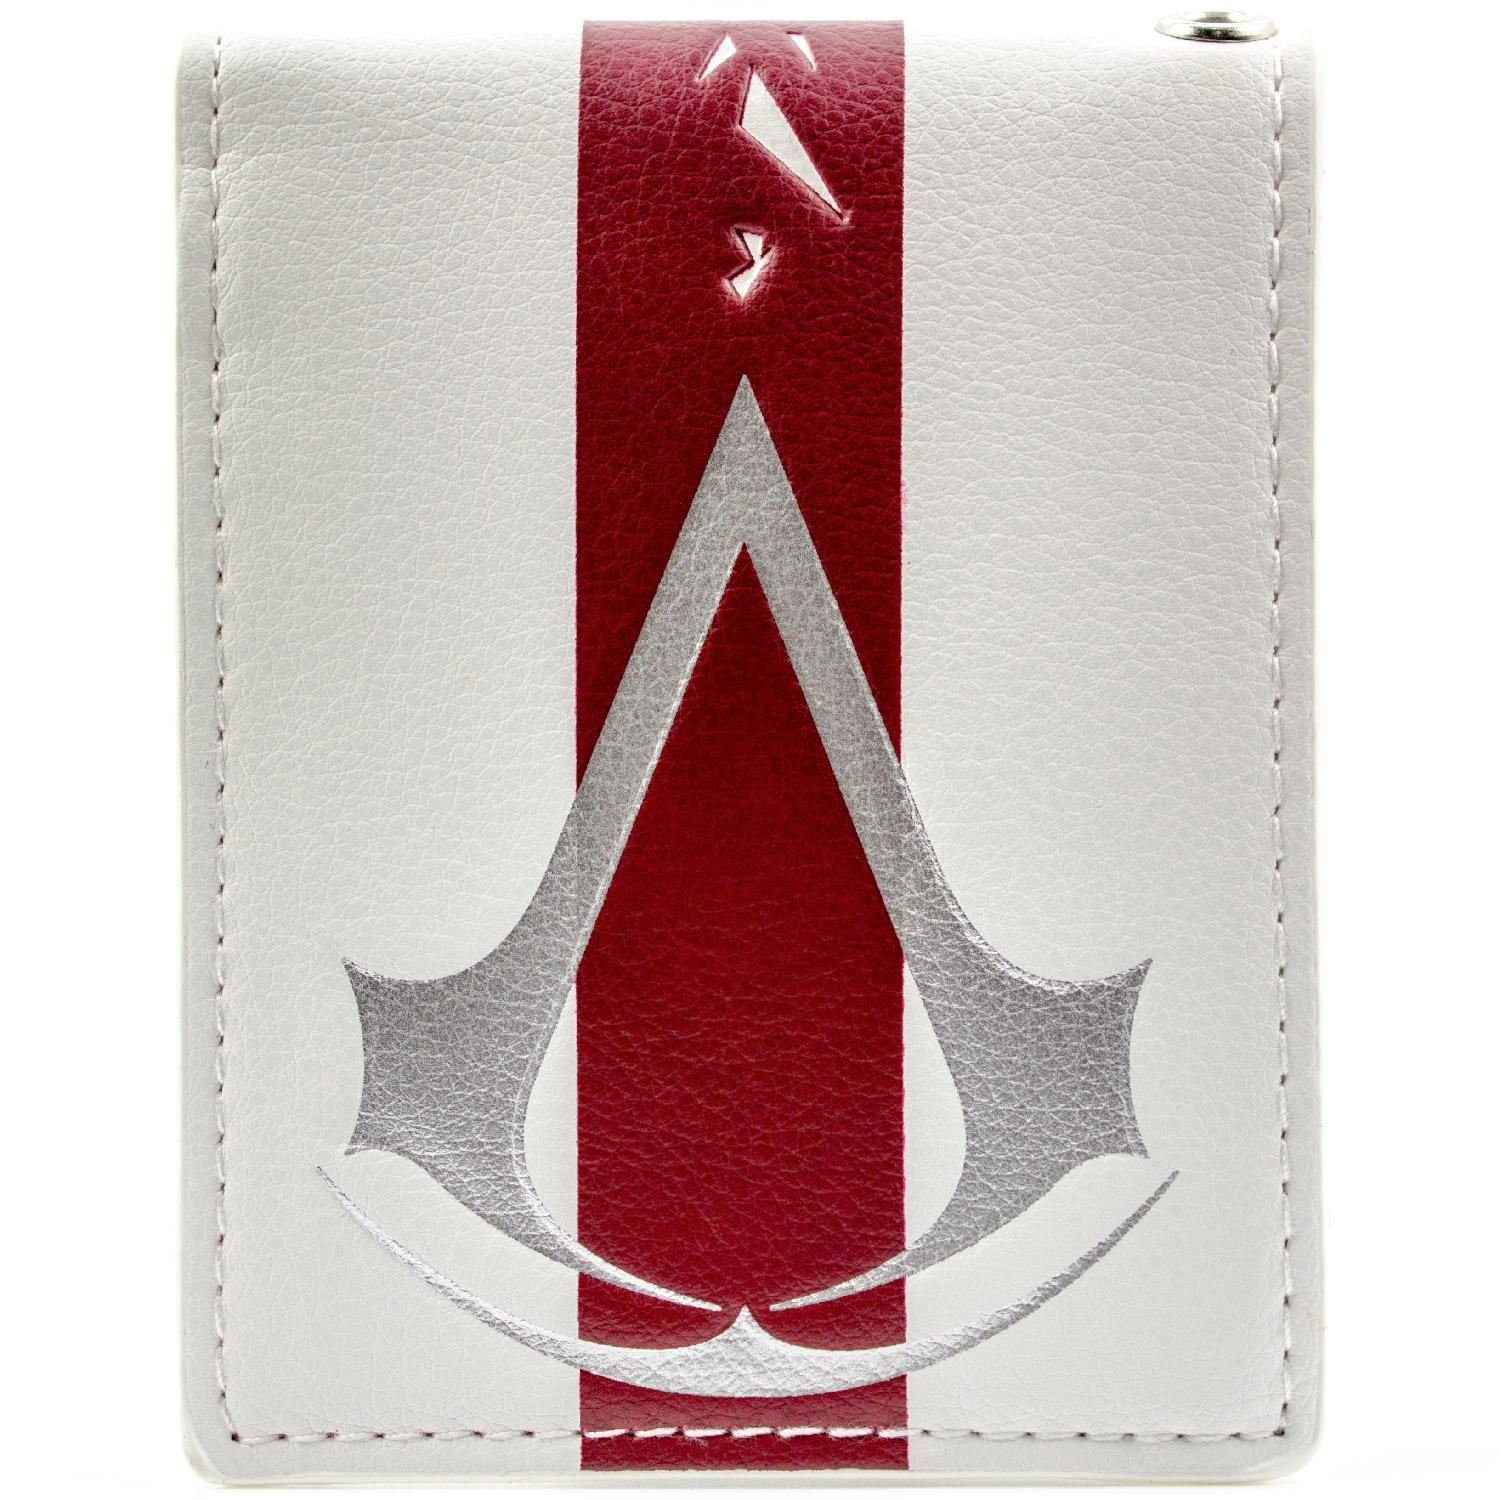 Cartera de Ubisoft Assassins Creed Raya roja Blanco 28363